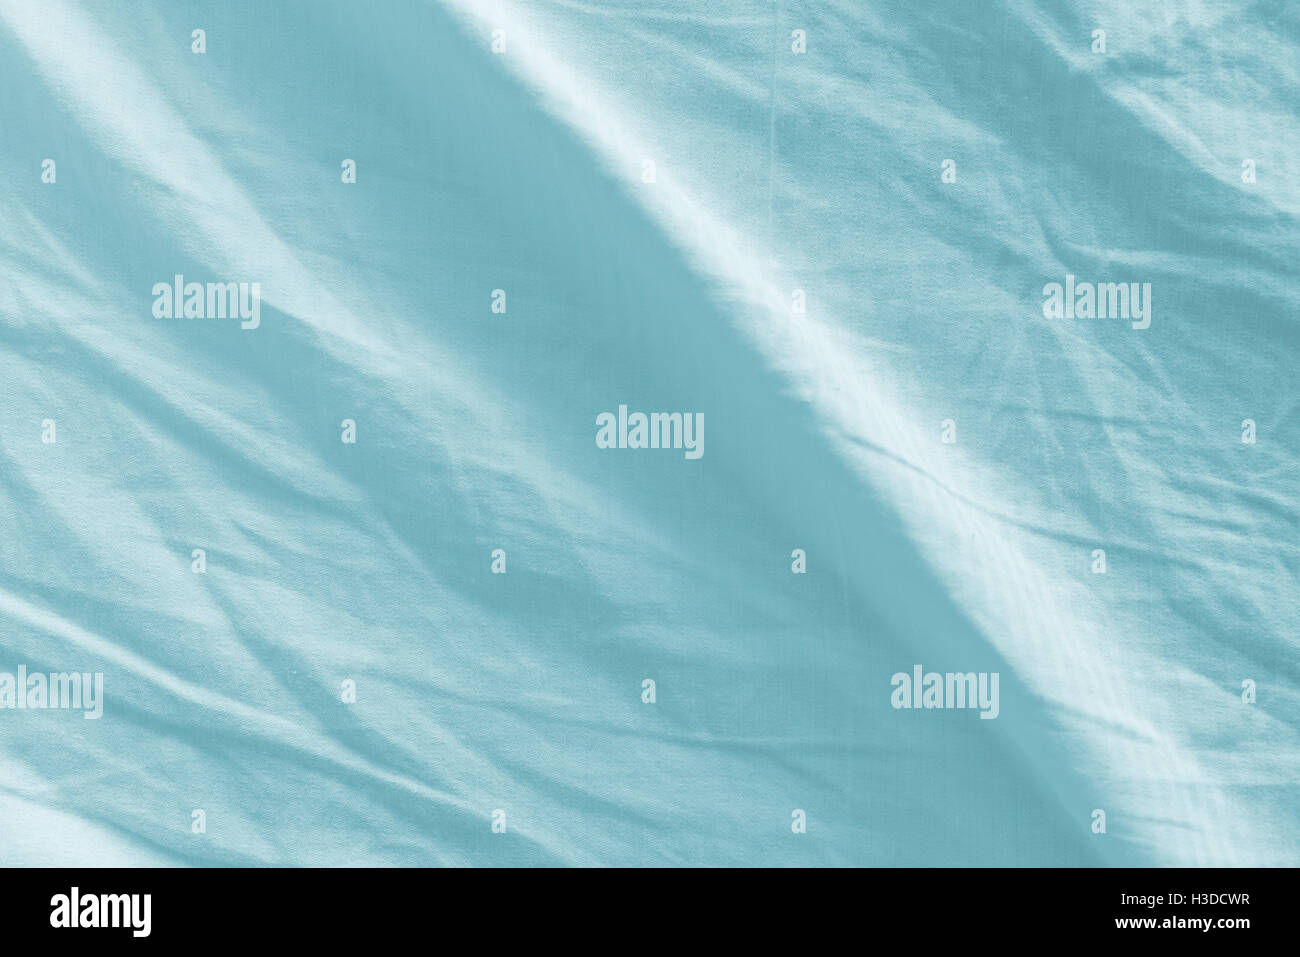 Crumpled bed sheets texture as background, top view - Stock Image